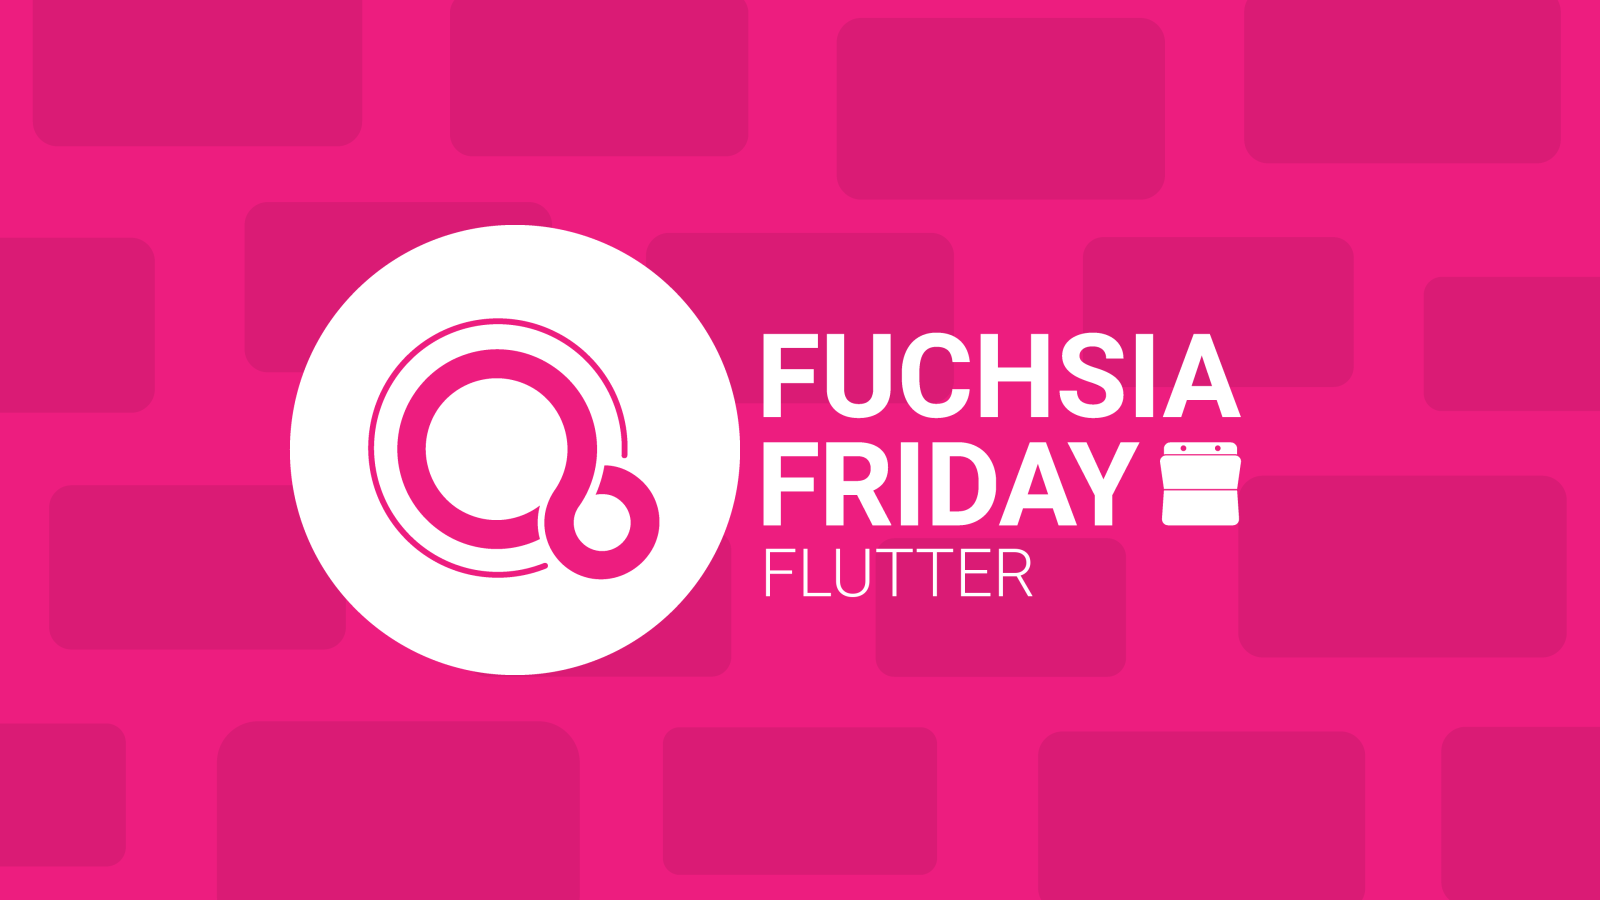 Fuchsia Friday: How Flutter is paving the way for Fuchsia (and our first Fuchsia app!)